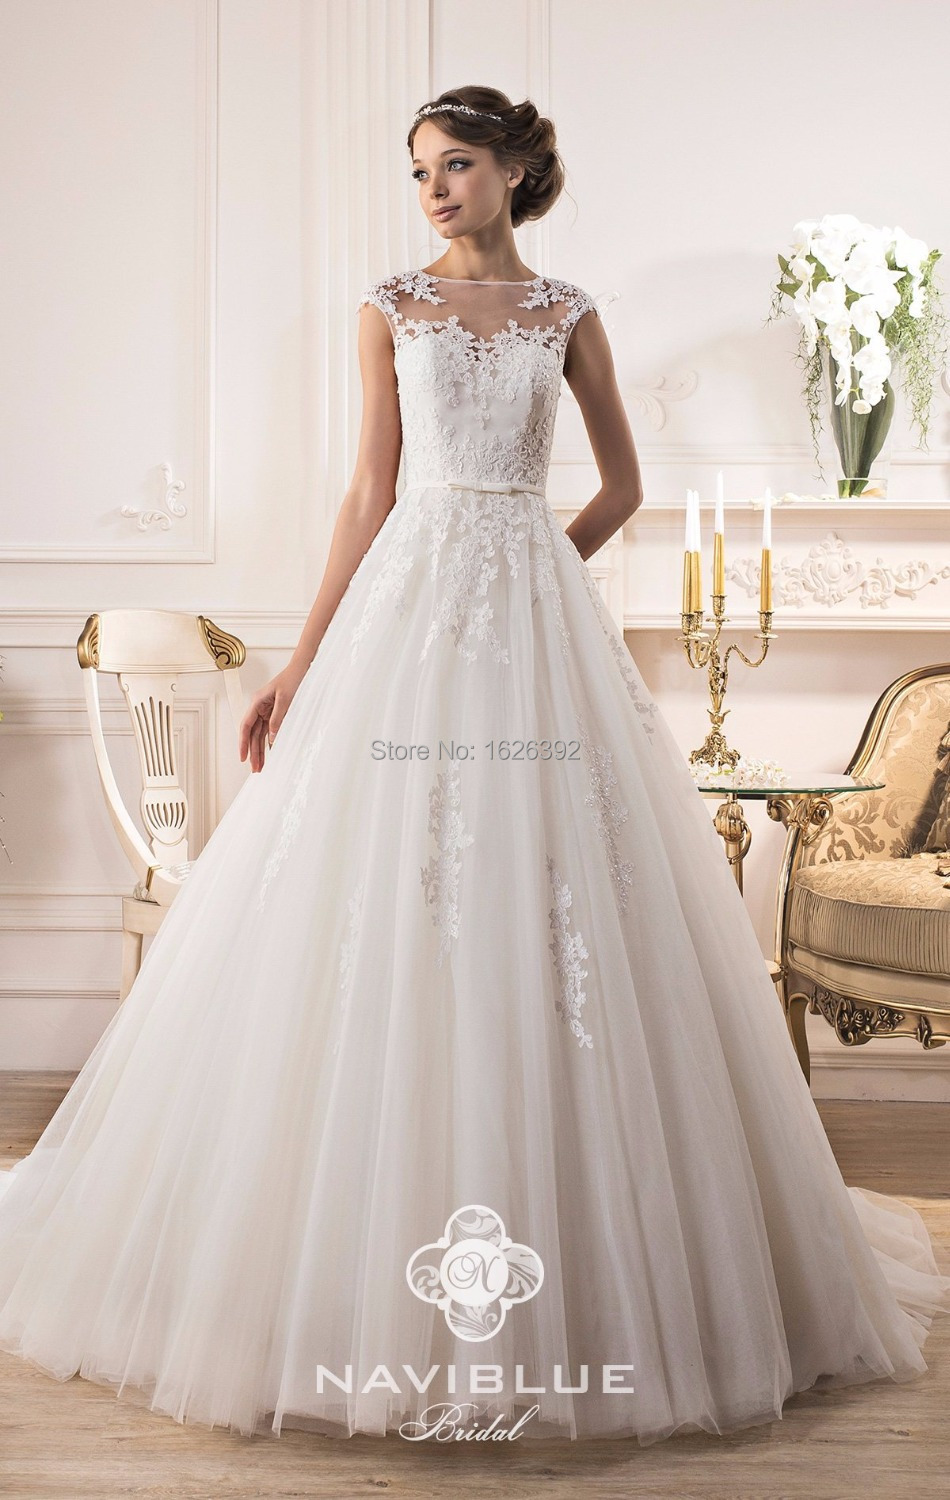 boat neck wedding gowns hottest inspirations for brides boat neck wedding dress gorgeous boat neck wedding dress 2